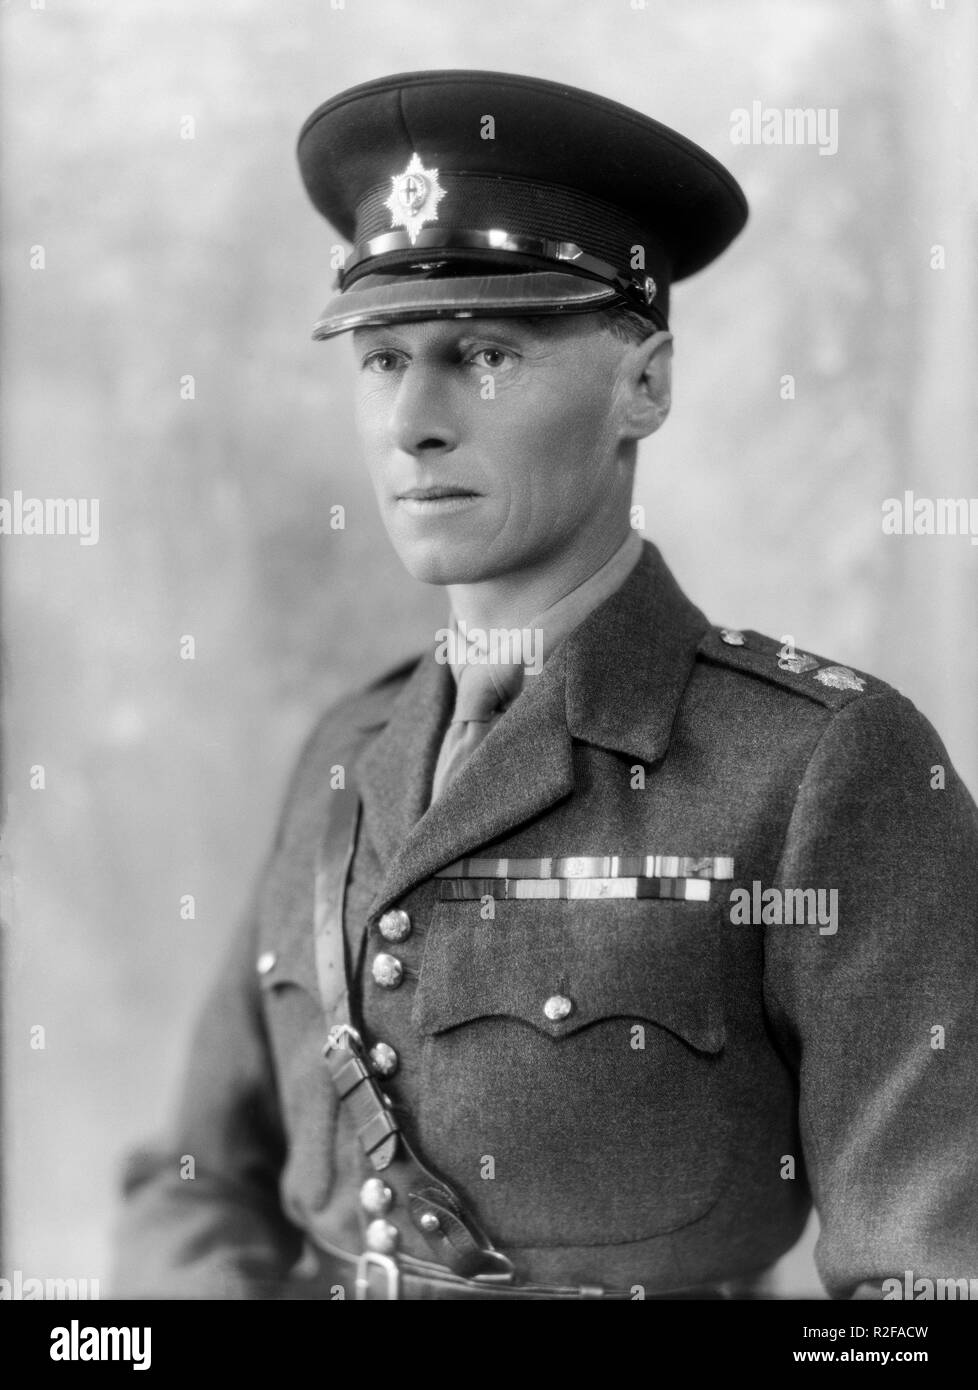 9th October 1928. Portrait photograph of Lieutenant Colonel A. G. C. Dawnay,  CBE, DSO, of the Coldstream Guards, a regiment in the British Army. Photo taken in the famous photographic studio of Bassano in London. He acted as Liaison Officer between General Allenby and Lawrence Of Arabia during the First World war. Born in 1888 and died in 1938. - Stock Image